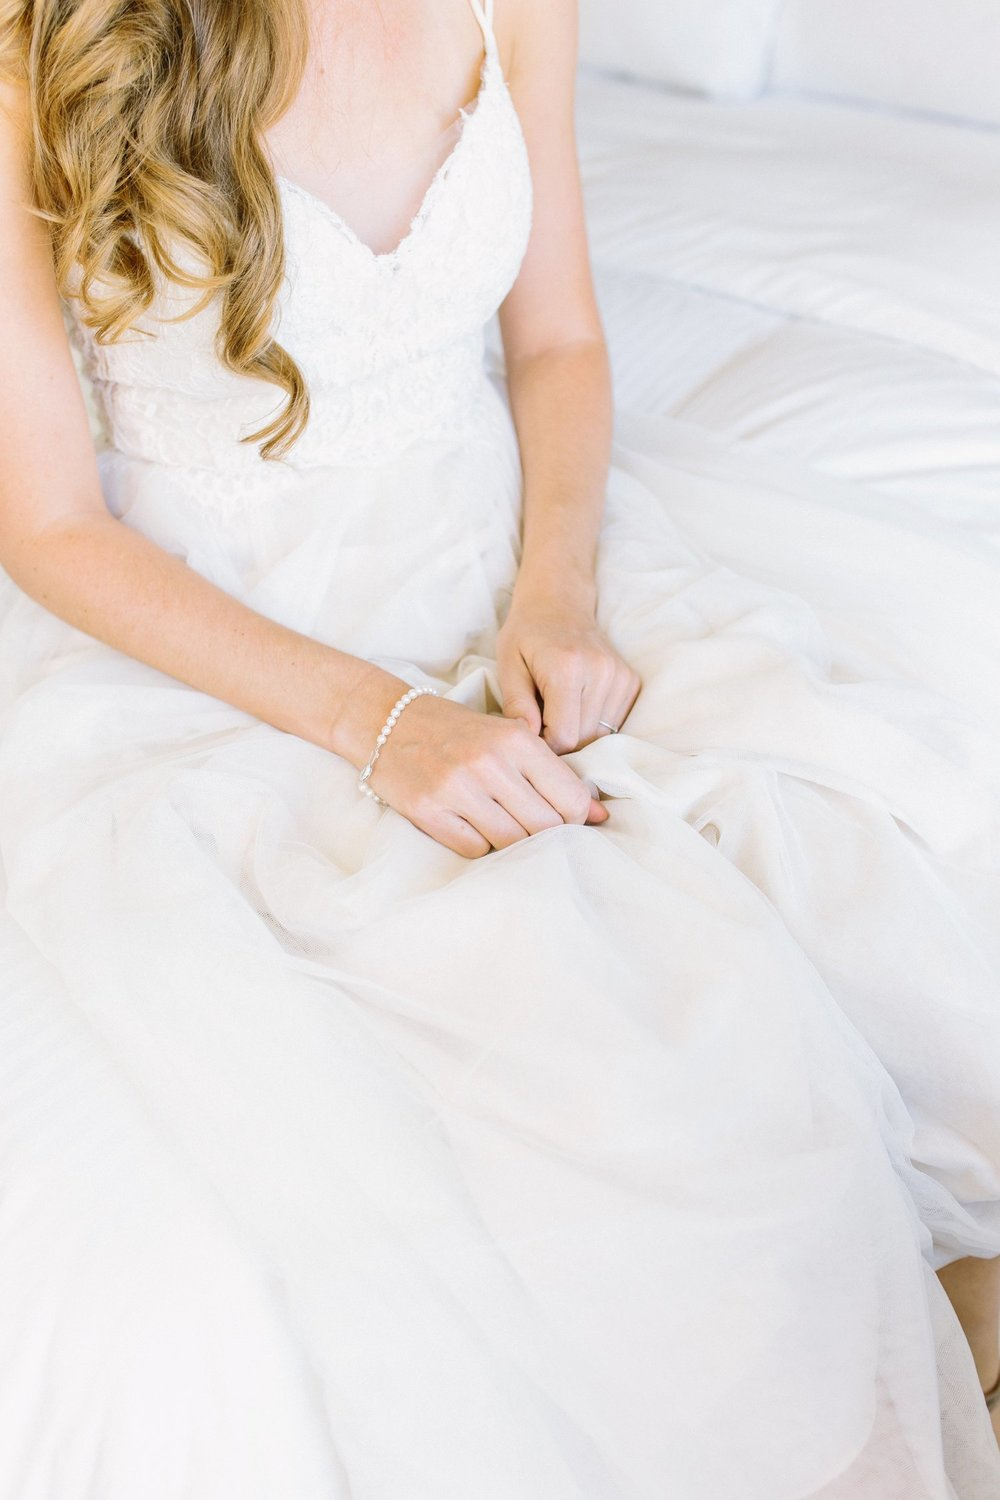 lindsey_a_miller_photography_historic_rice_mill_charleston_wedding_20.jpg